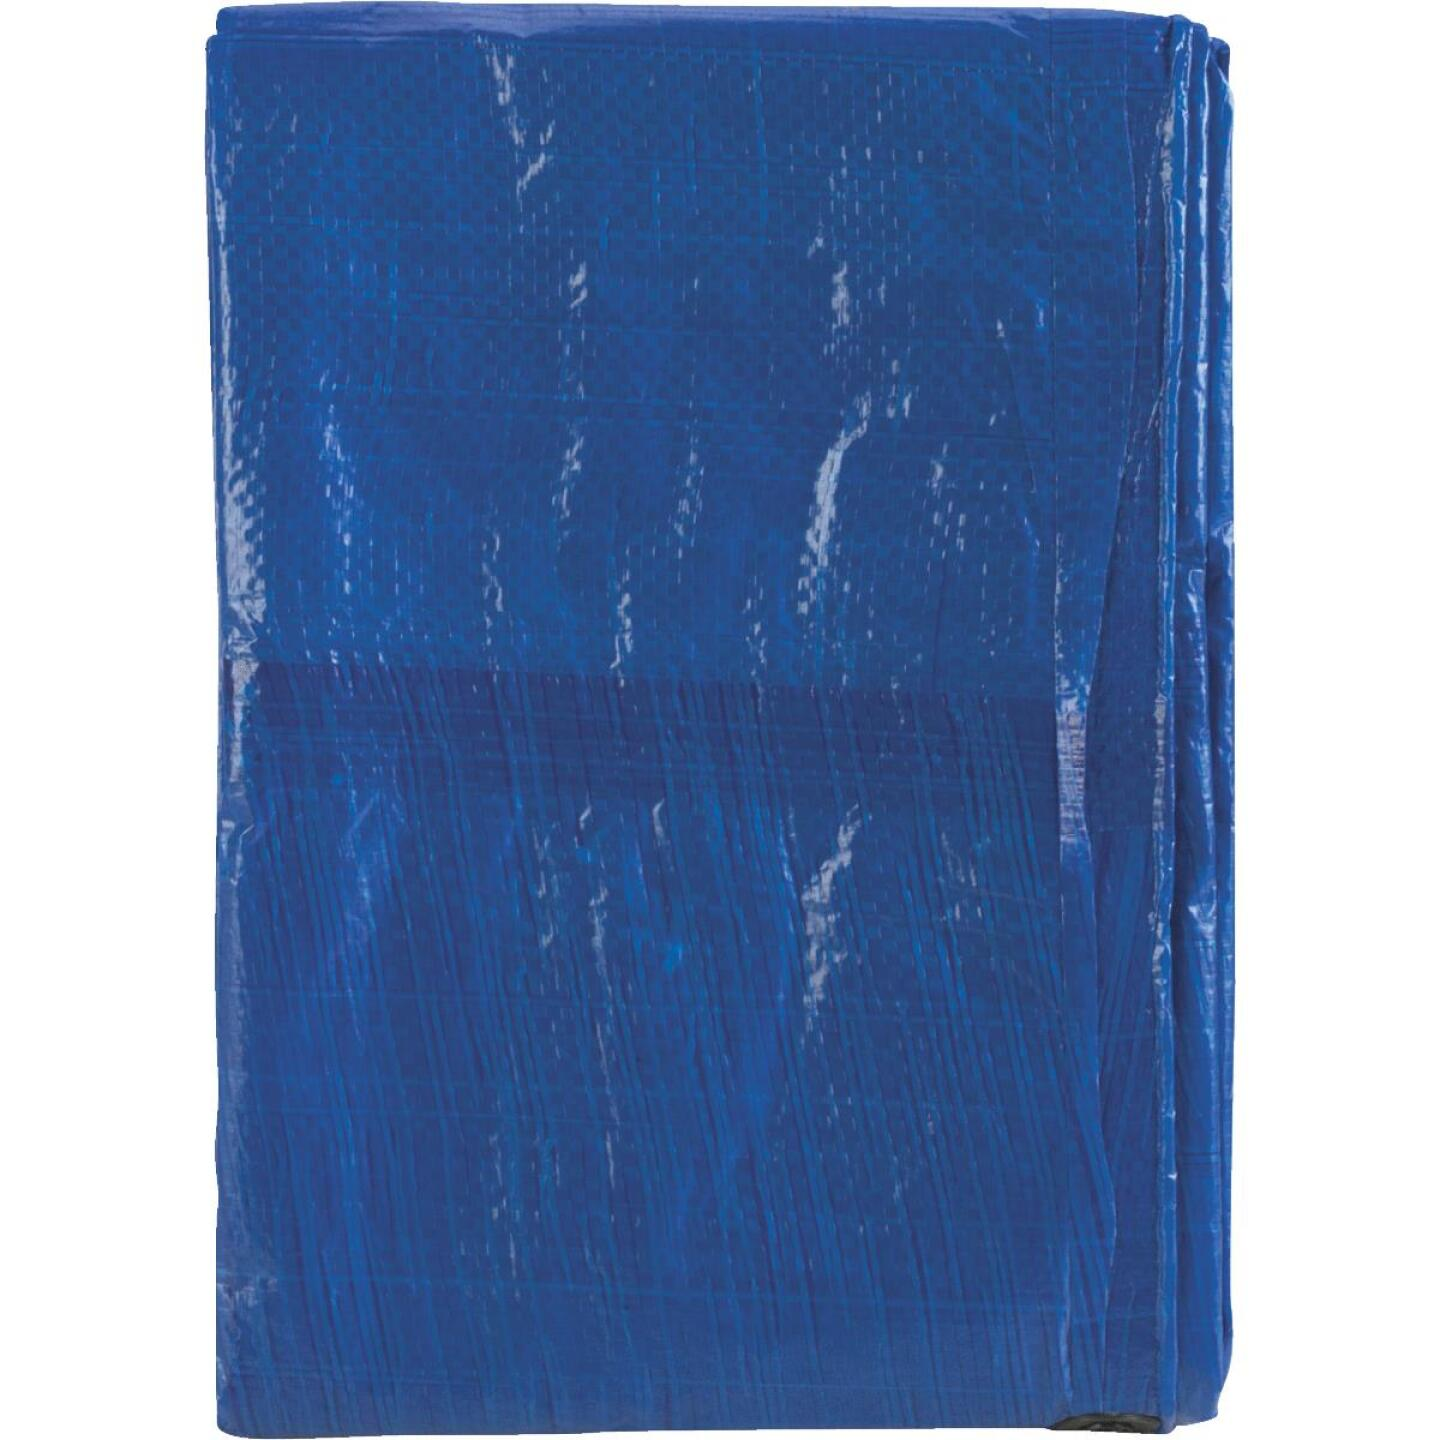 Do it Blue Woven 8 Ft. x 10 Ft. General Purpose Tarp Image 3